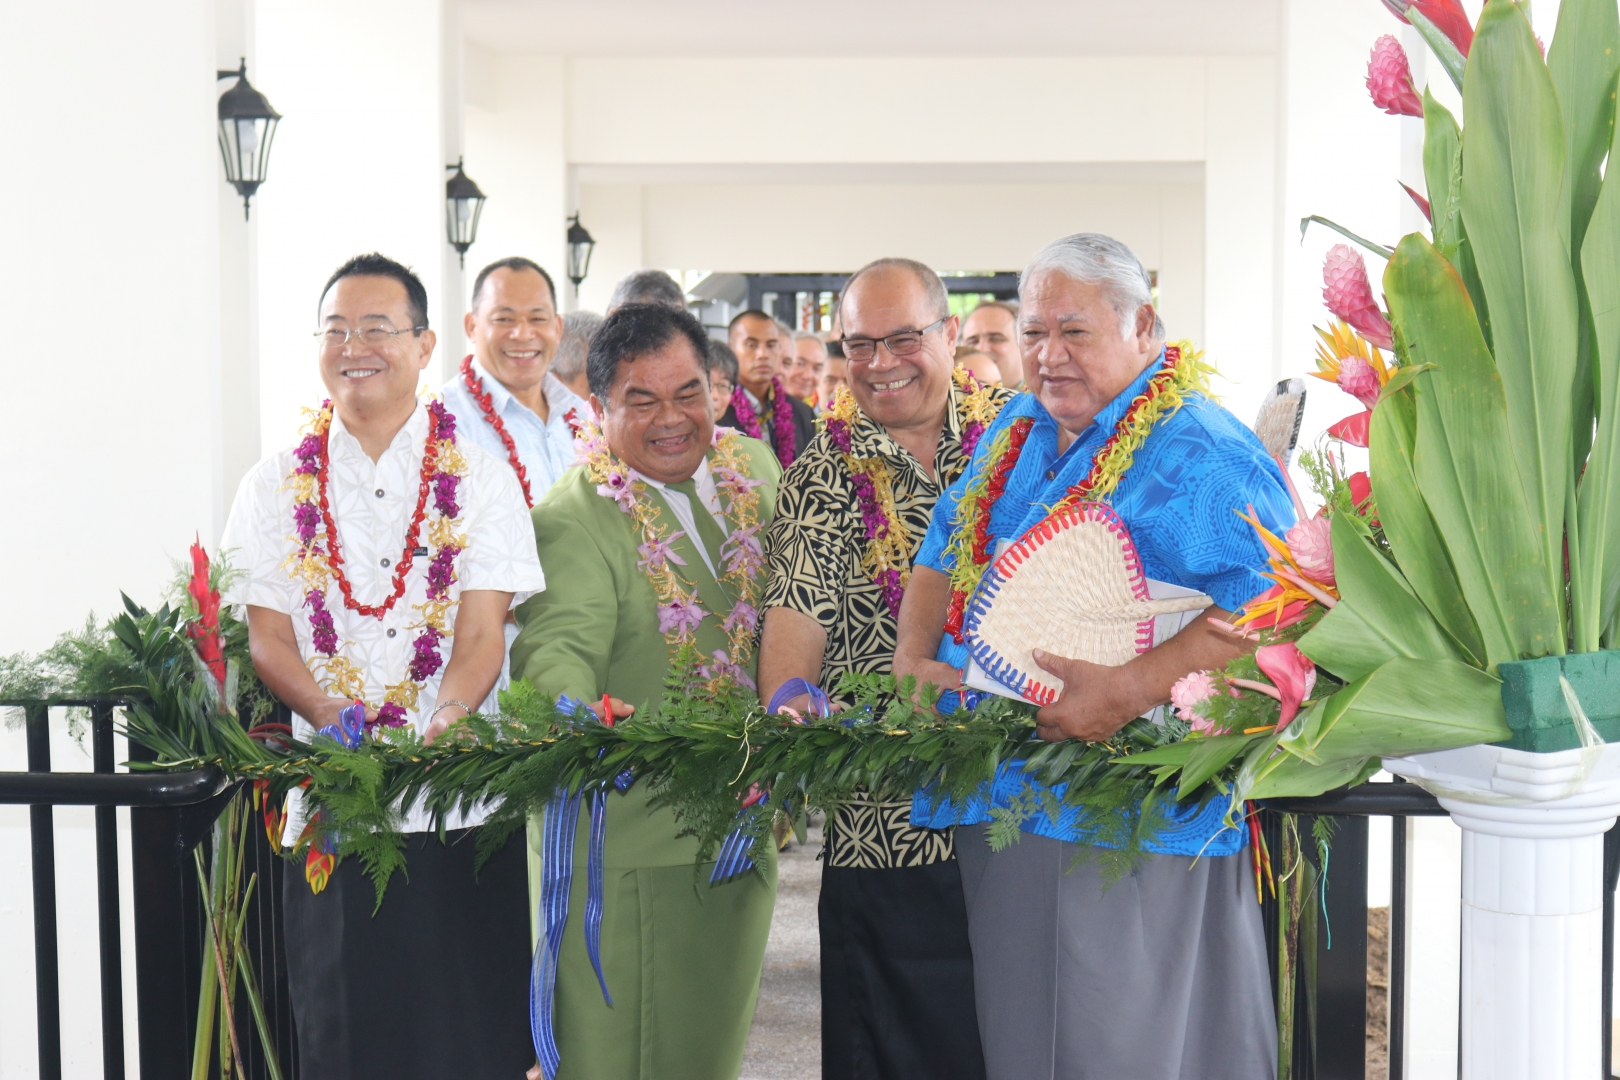 PM Tuilaepa, Minister Aupito William Sio, Ambassador Shinya Aoki and Rev Nuuausala Siaosi